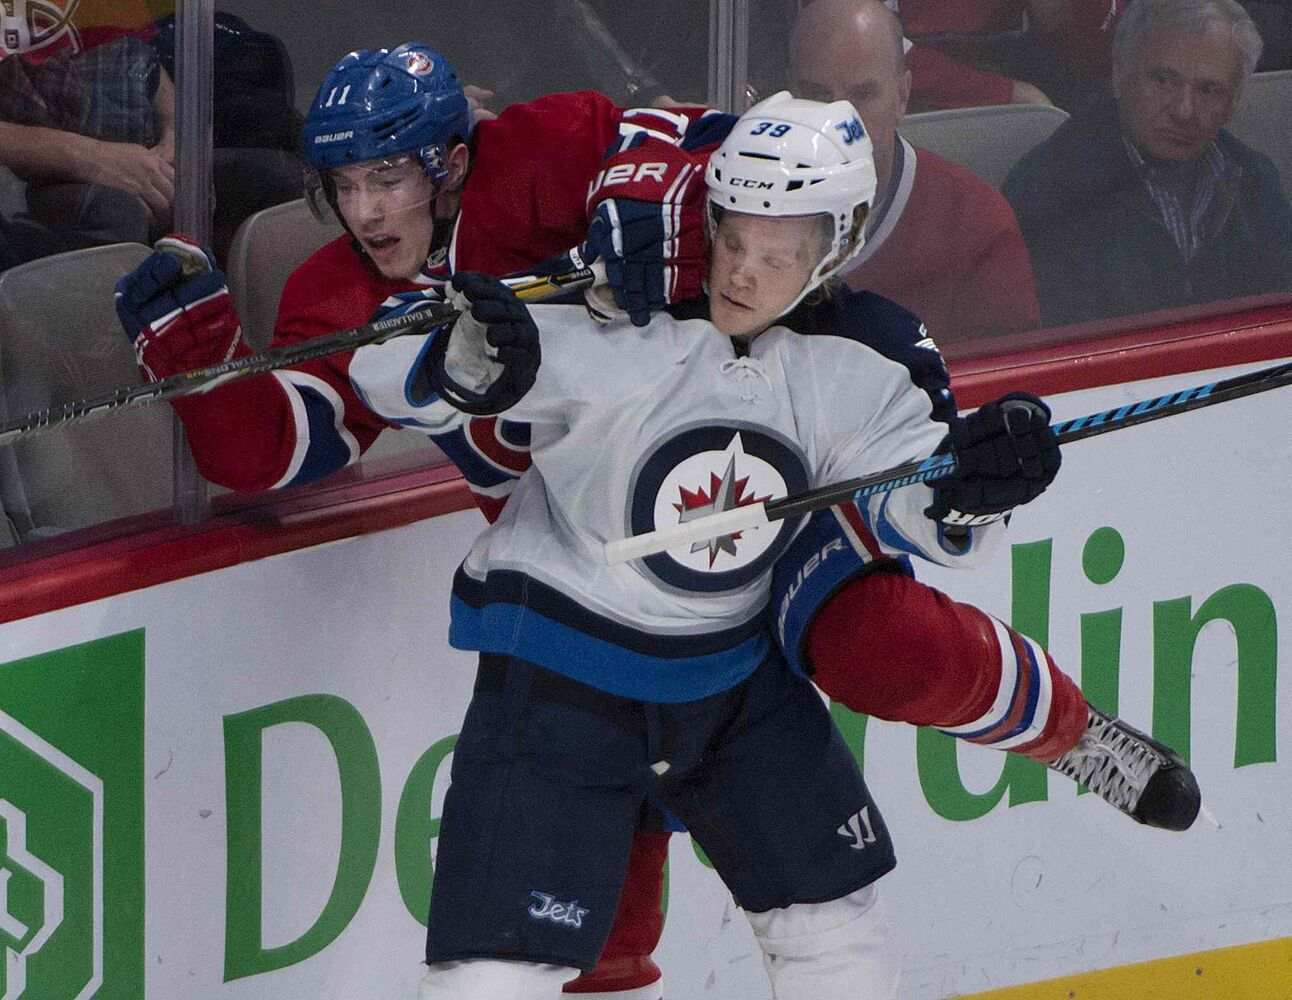 Jets defender Tobias Enstrom hammers Habs' forward Brendan Gallagher.  (Peter McCabe / The Canadian Press)